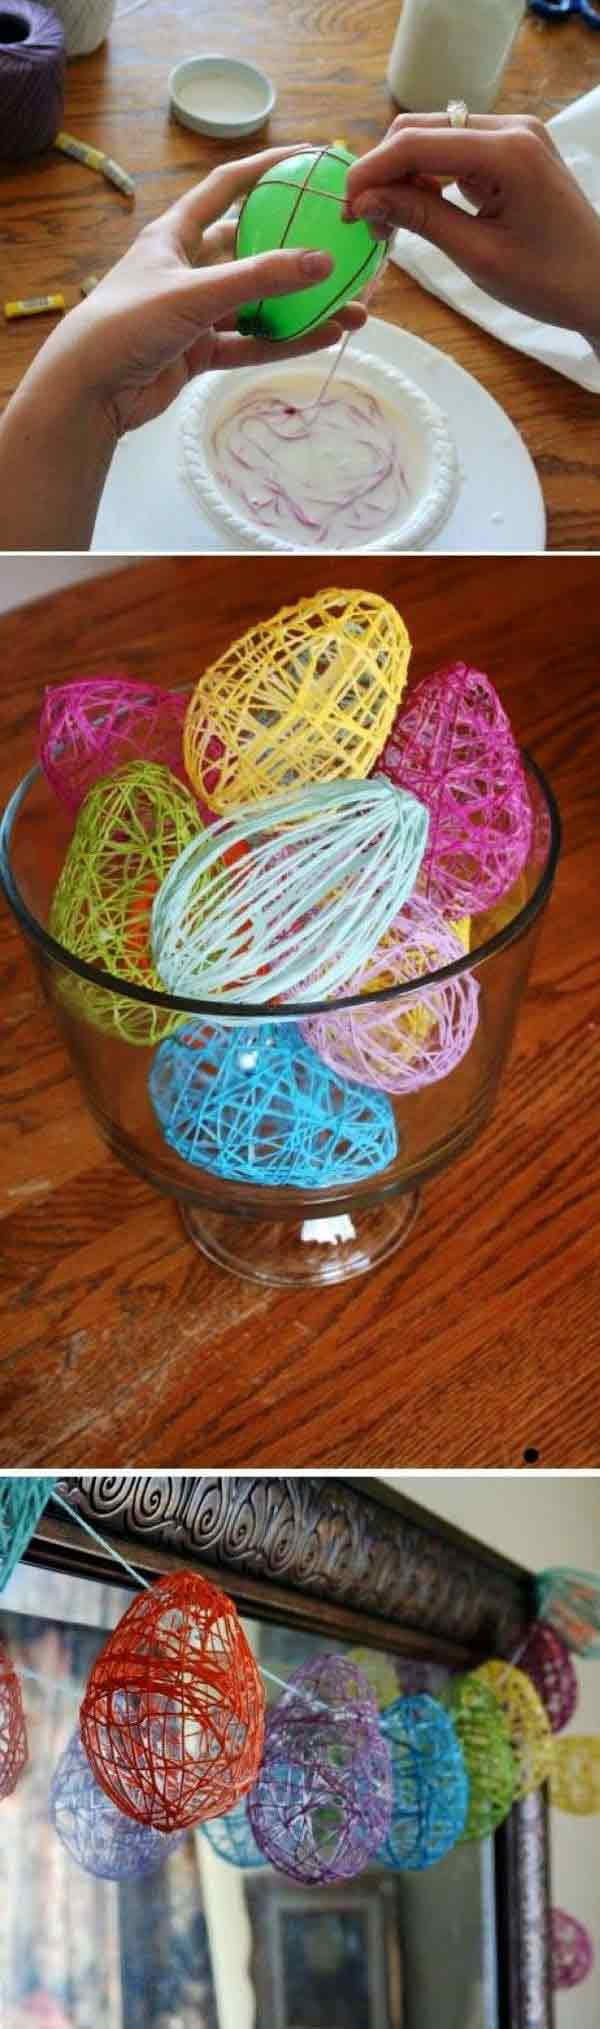 Diy-crafts-for-easter-4